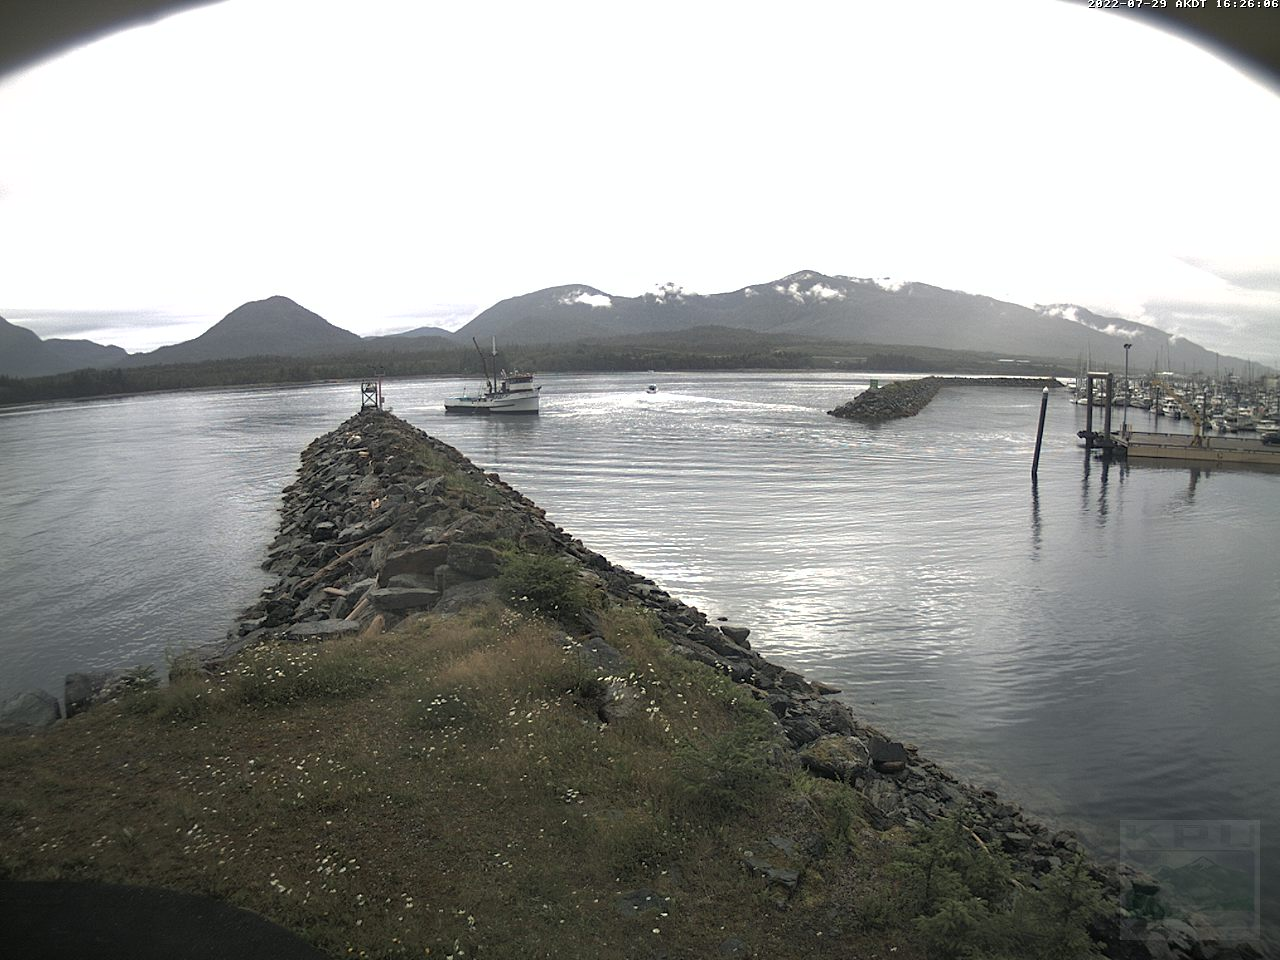 Current Ketchikan Webcam #4 Alaska-sized Image